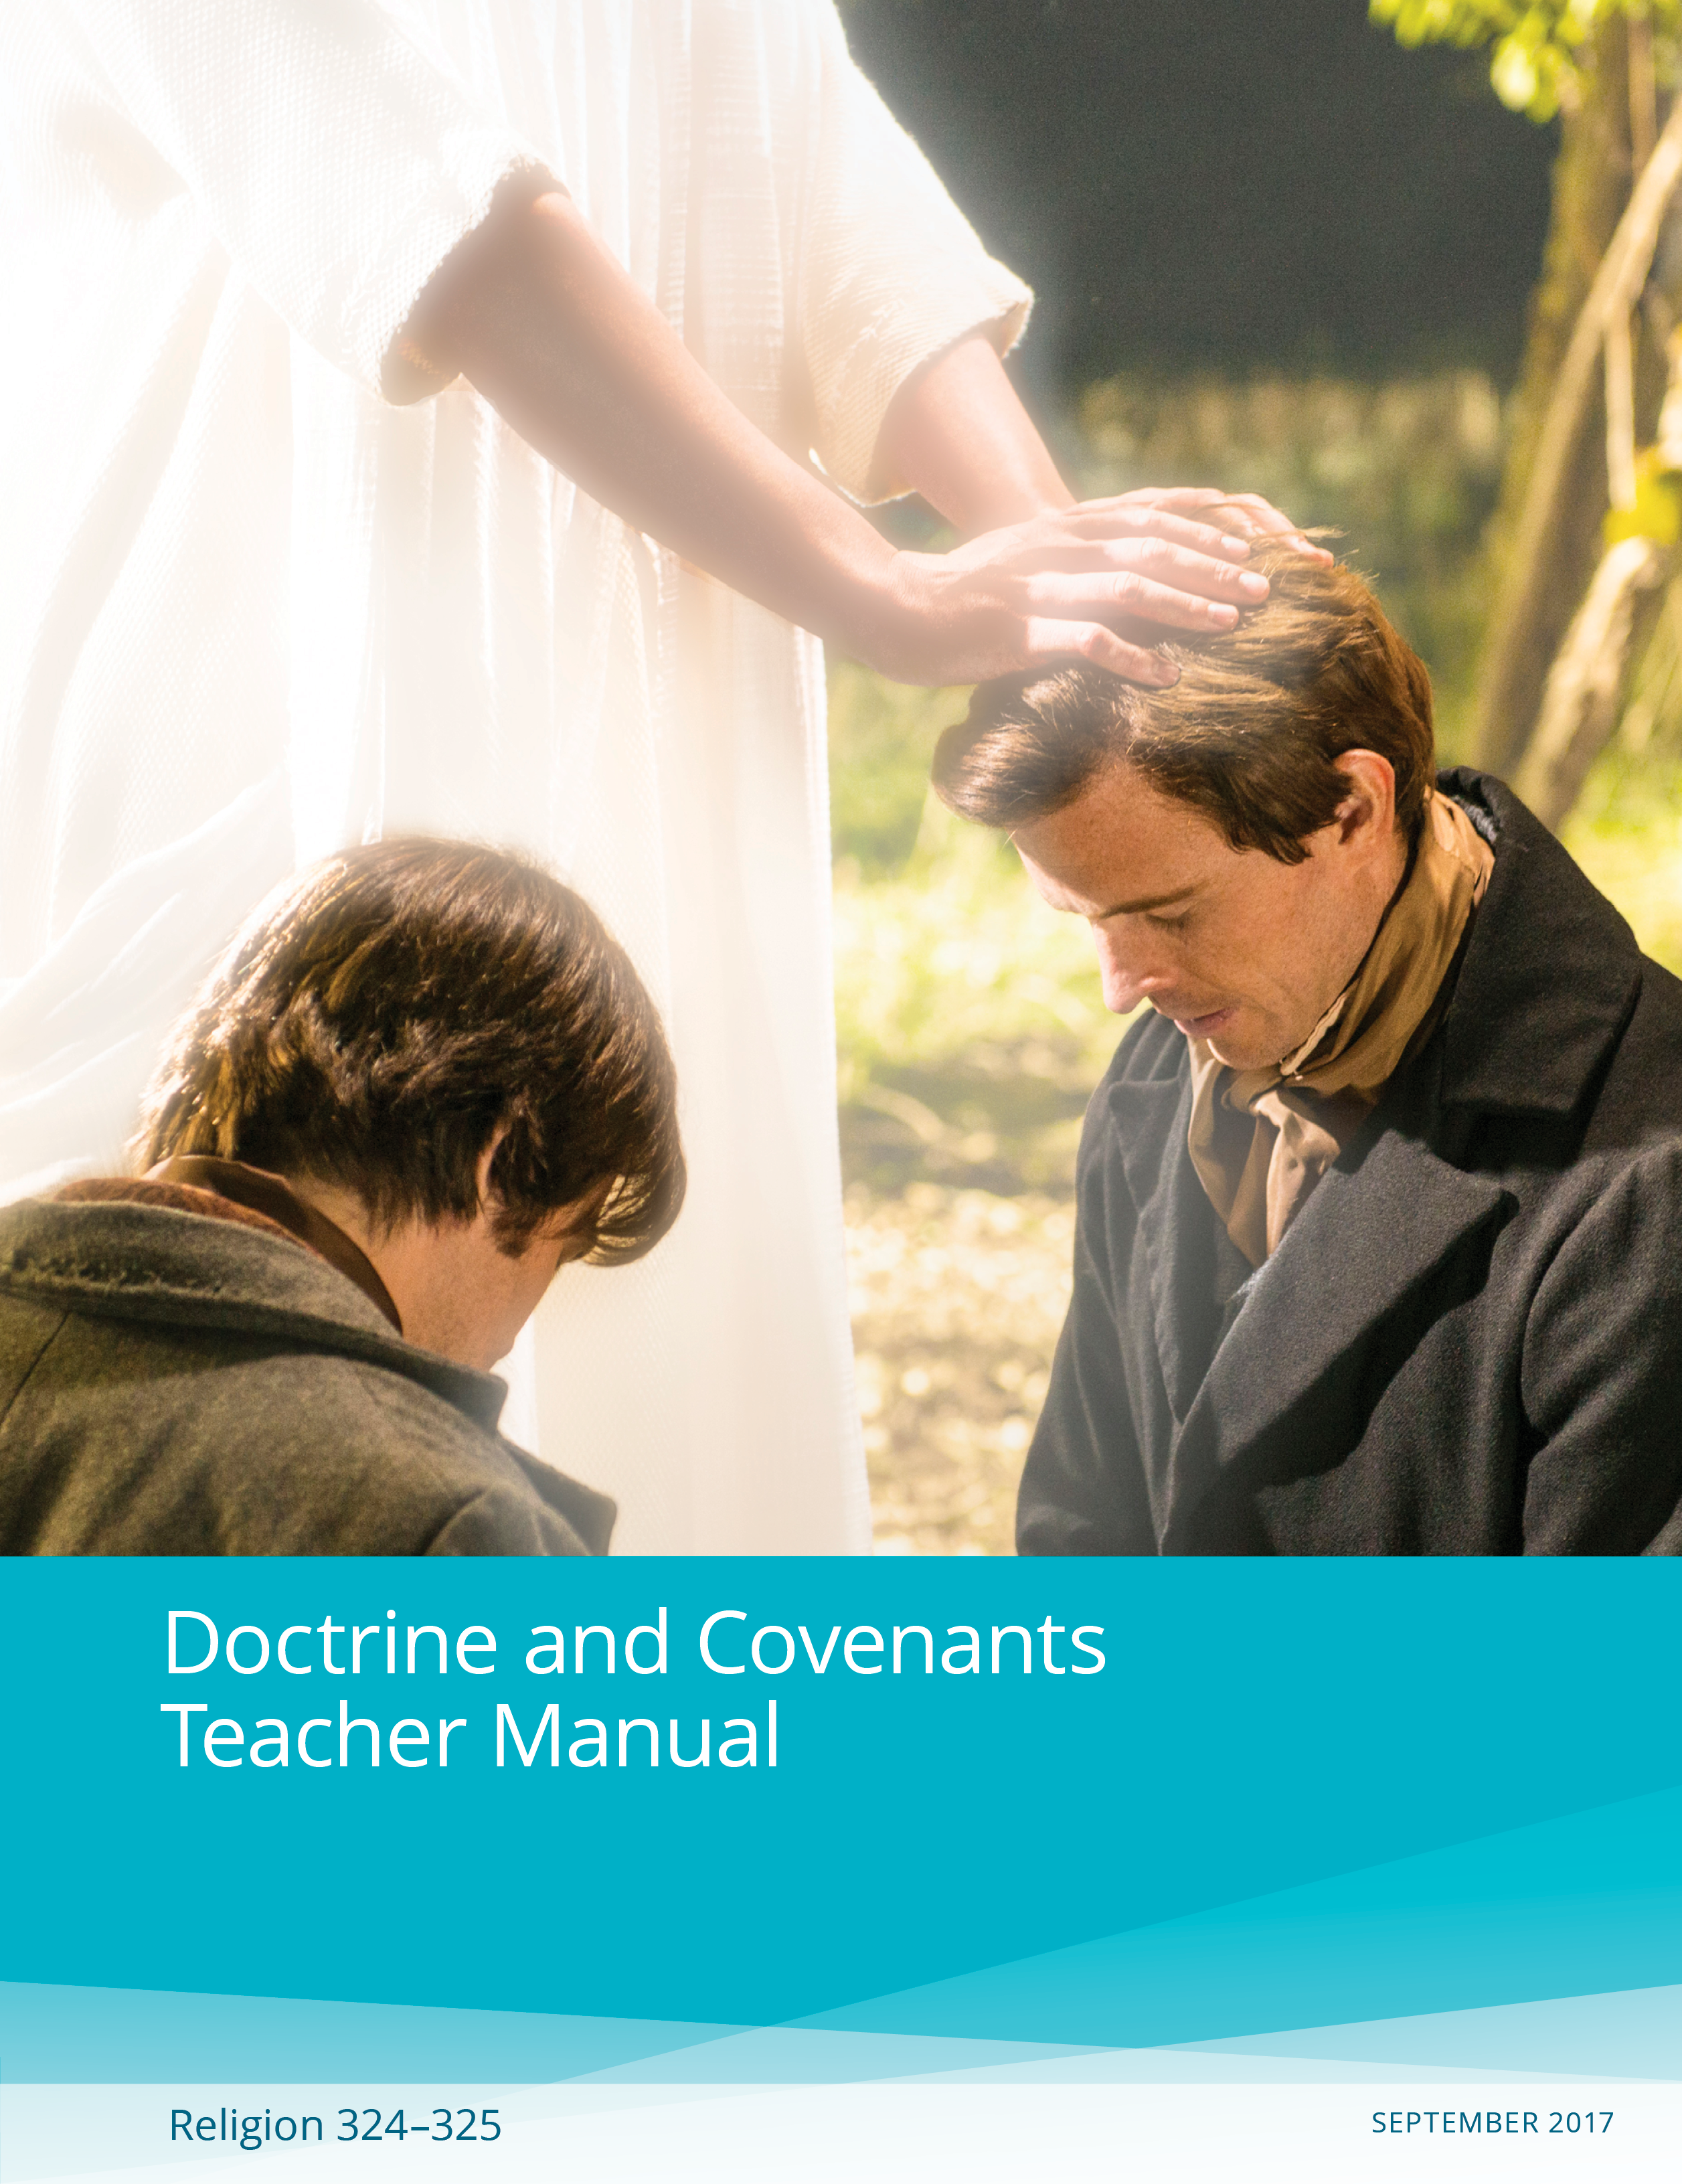 Doctrine and Covenants Teacher Manual